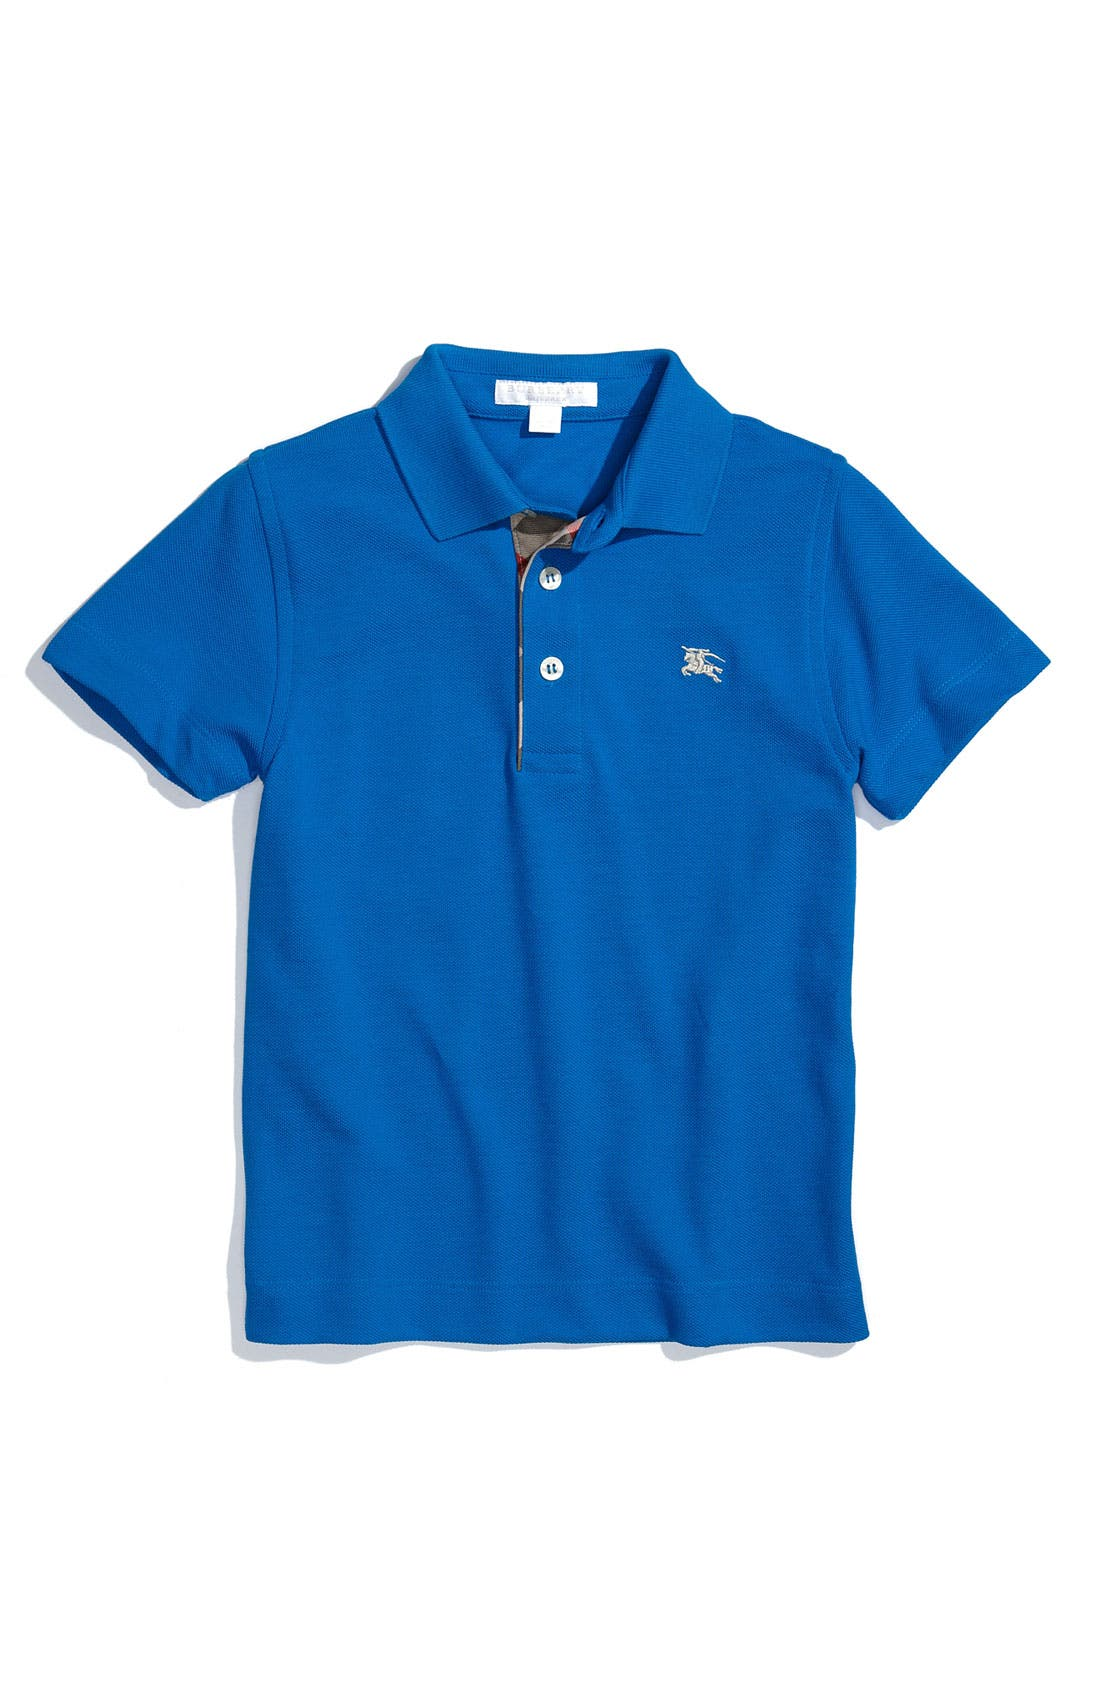 Alternate Image 1 Selected - Burberry Short Sleeve Piqué Polo (Little Boys)